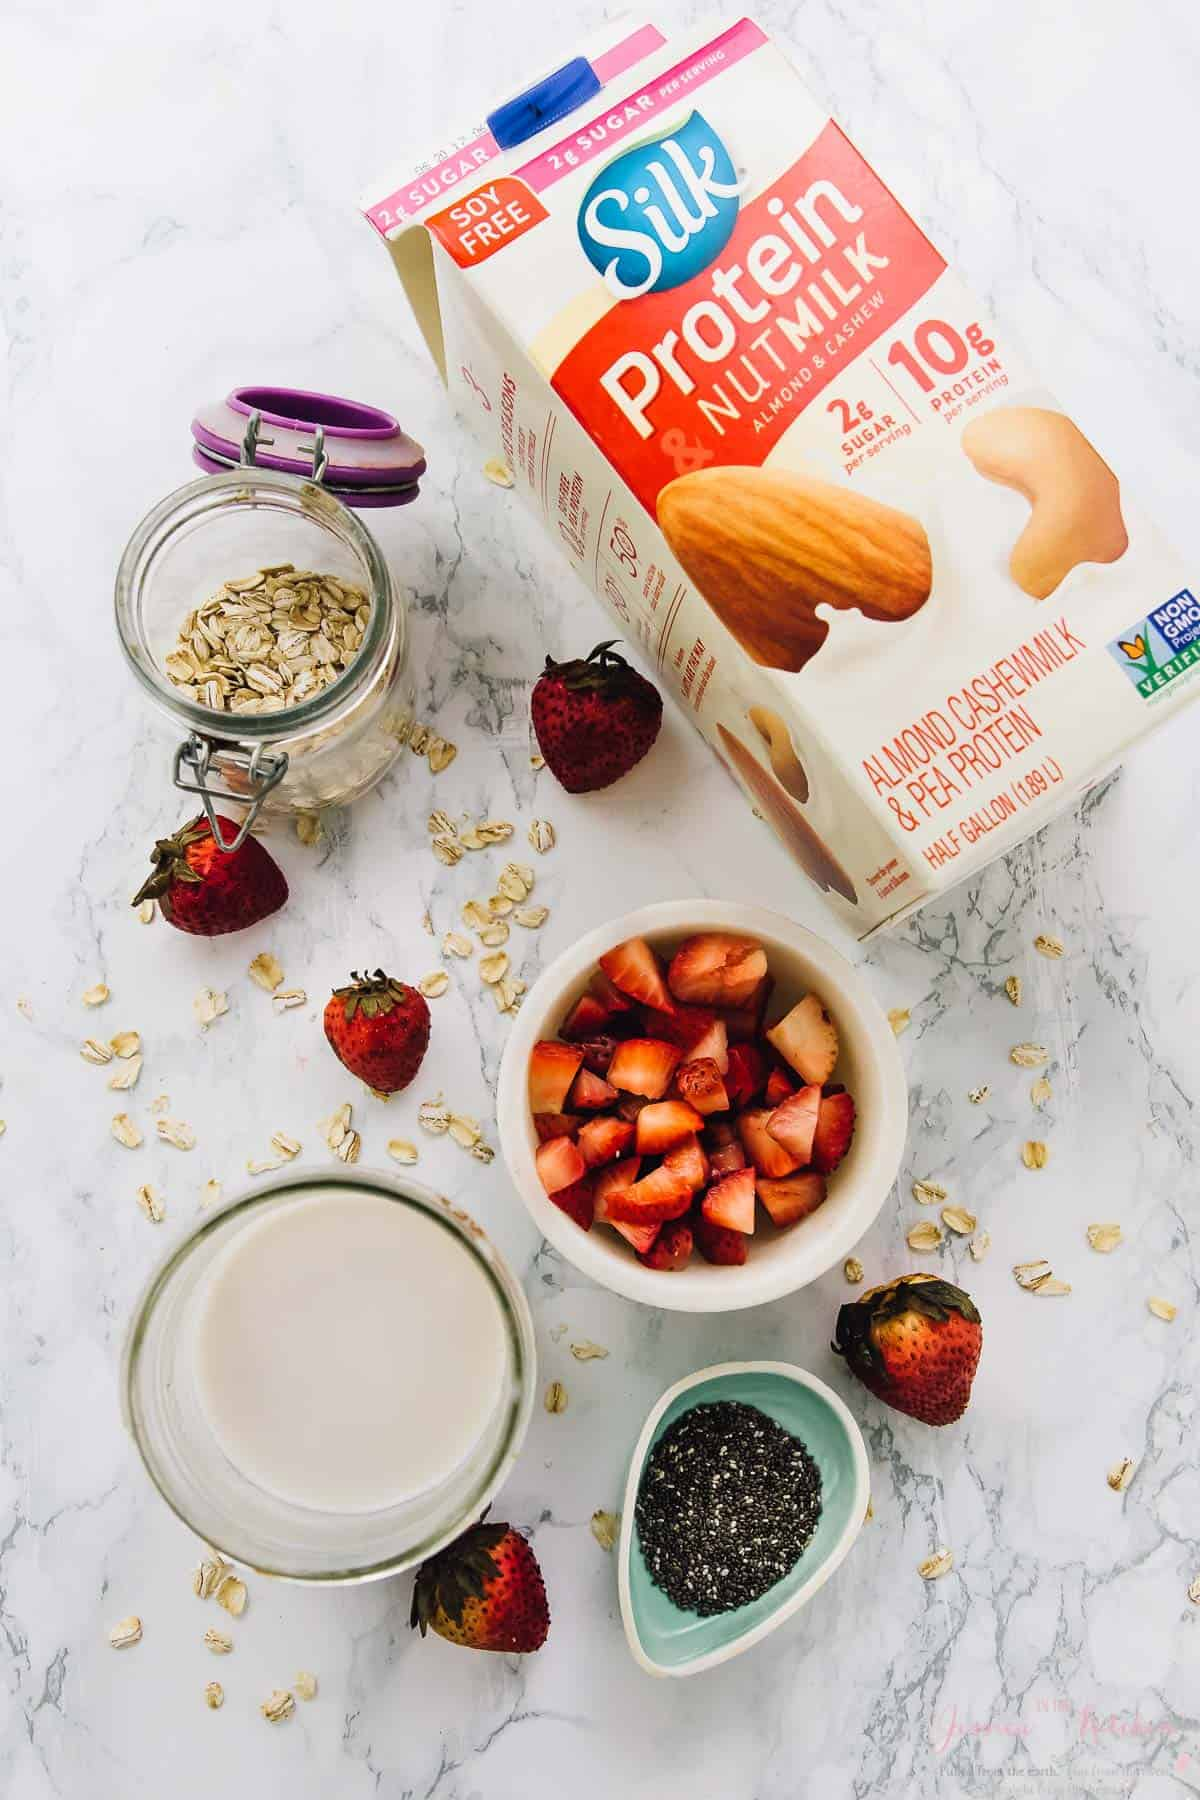 These Strawberry Coconut Overnight Oats are the easiest breakfast ever! They require only 5 minutes of prep and are delicious, filling and so nutritious! They are perfect for meal prep! via https://jessicainthekitchen.com